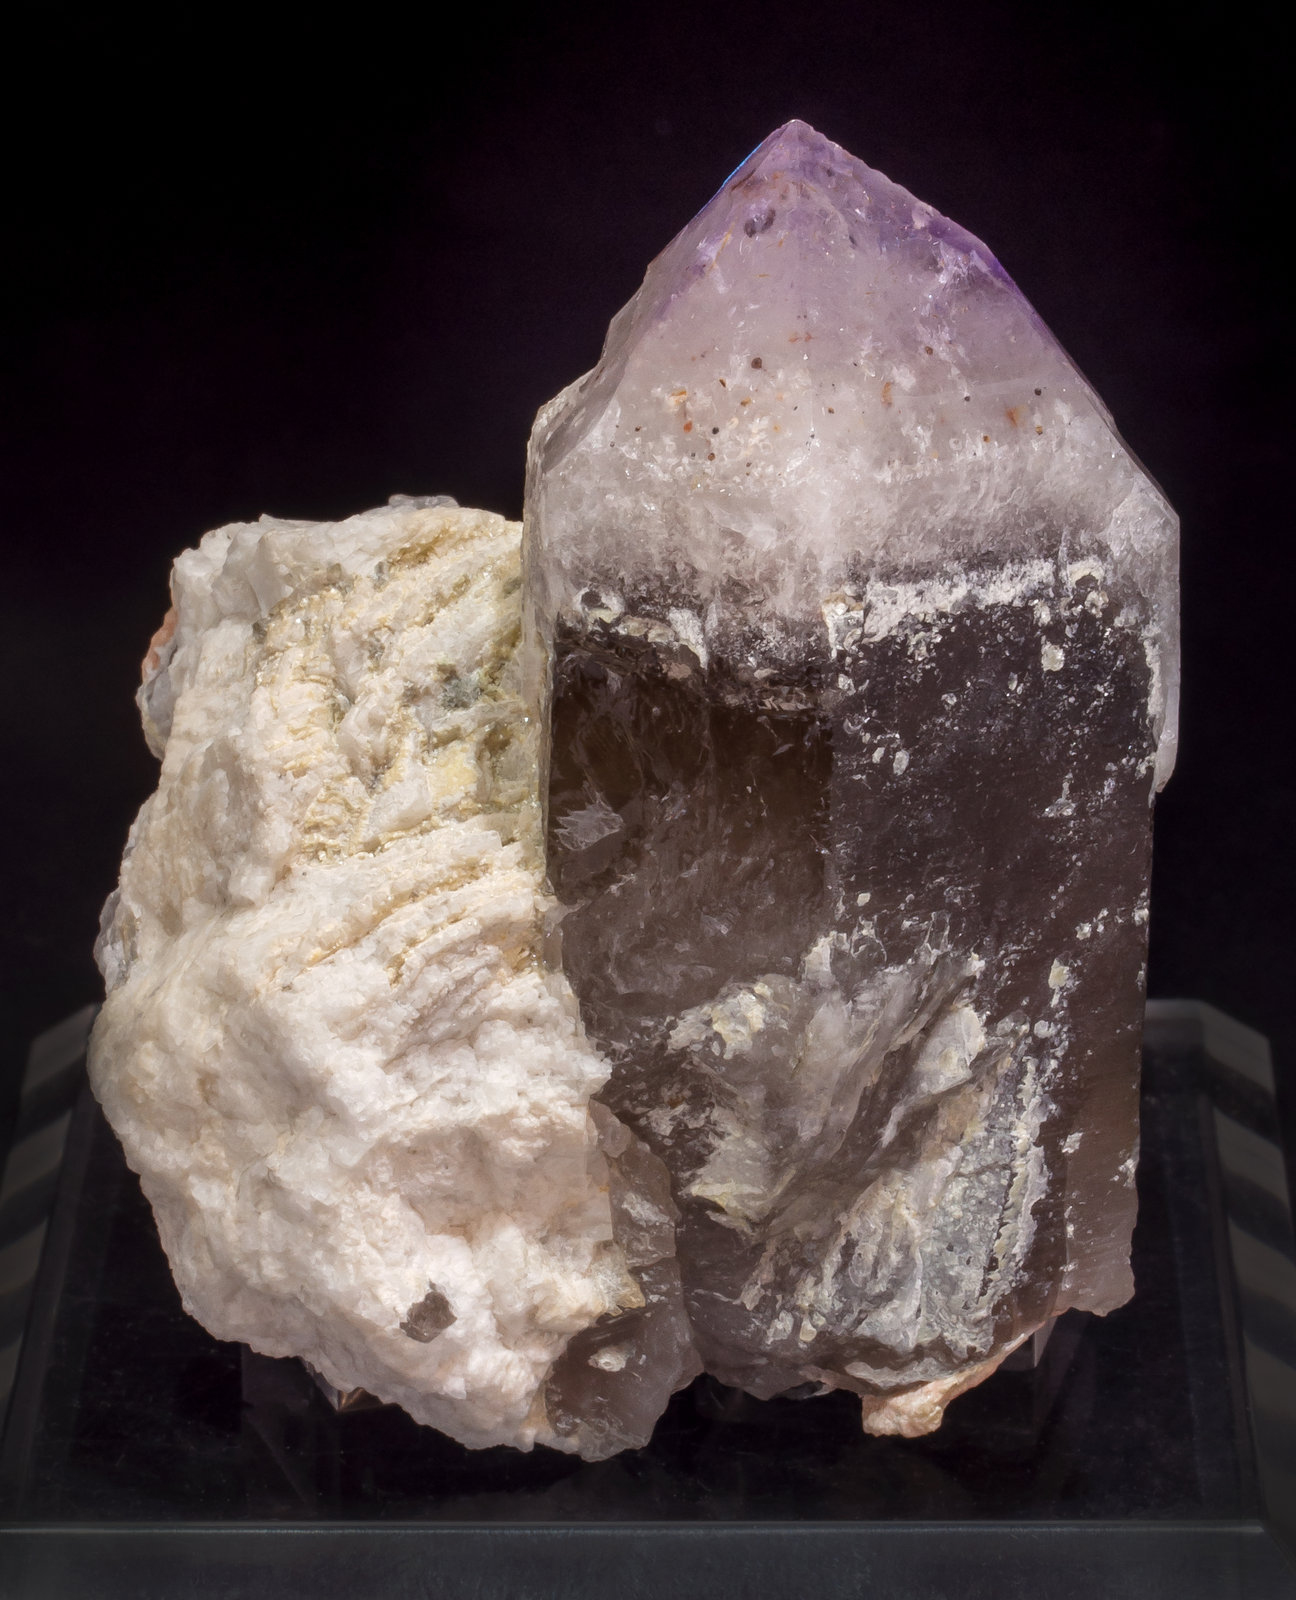 specimens/s_imagesAL9/Quartz_amethyst-NJ36AL9s.jpg